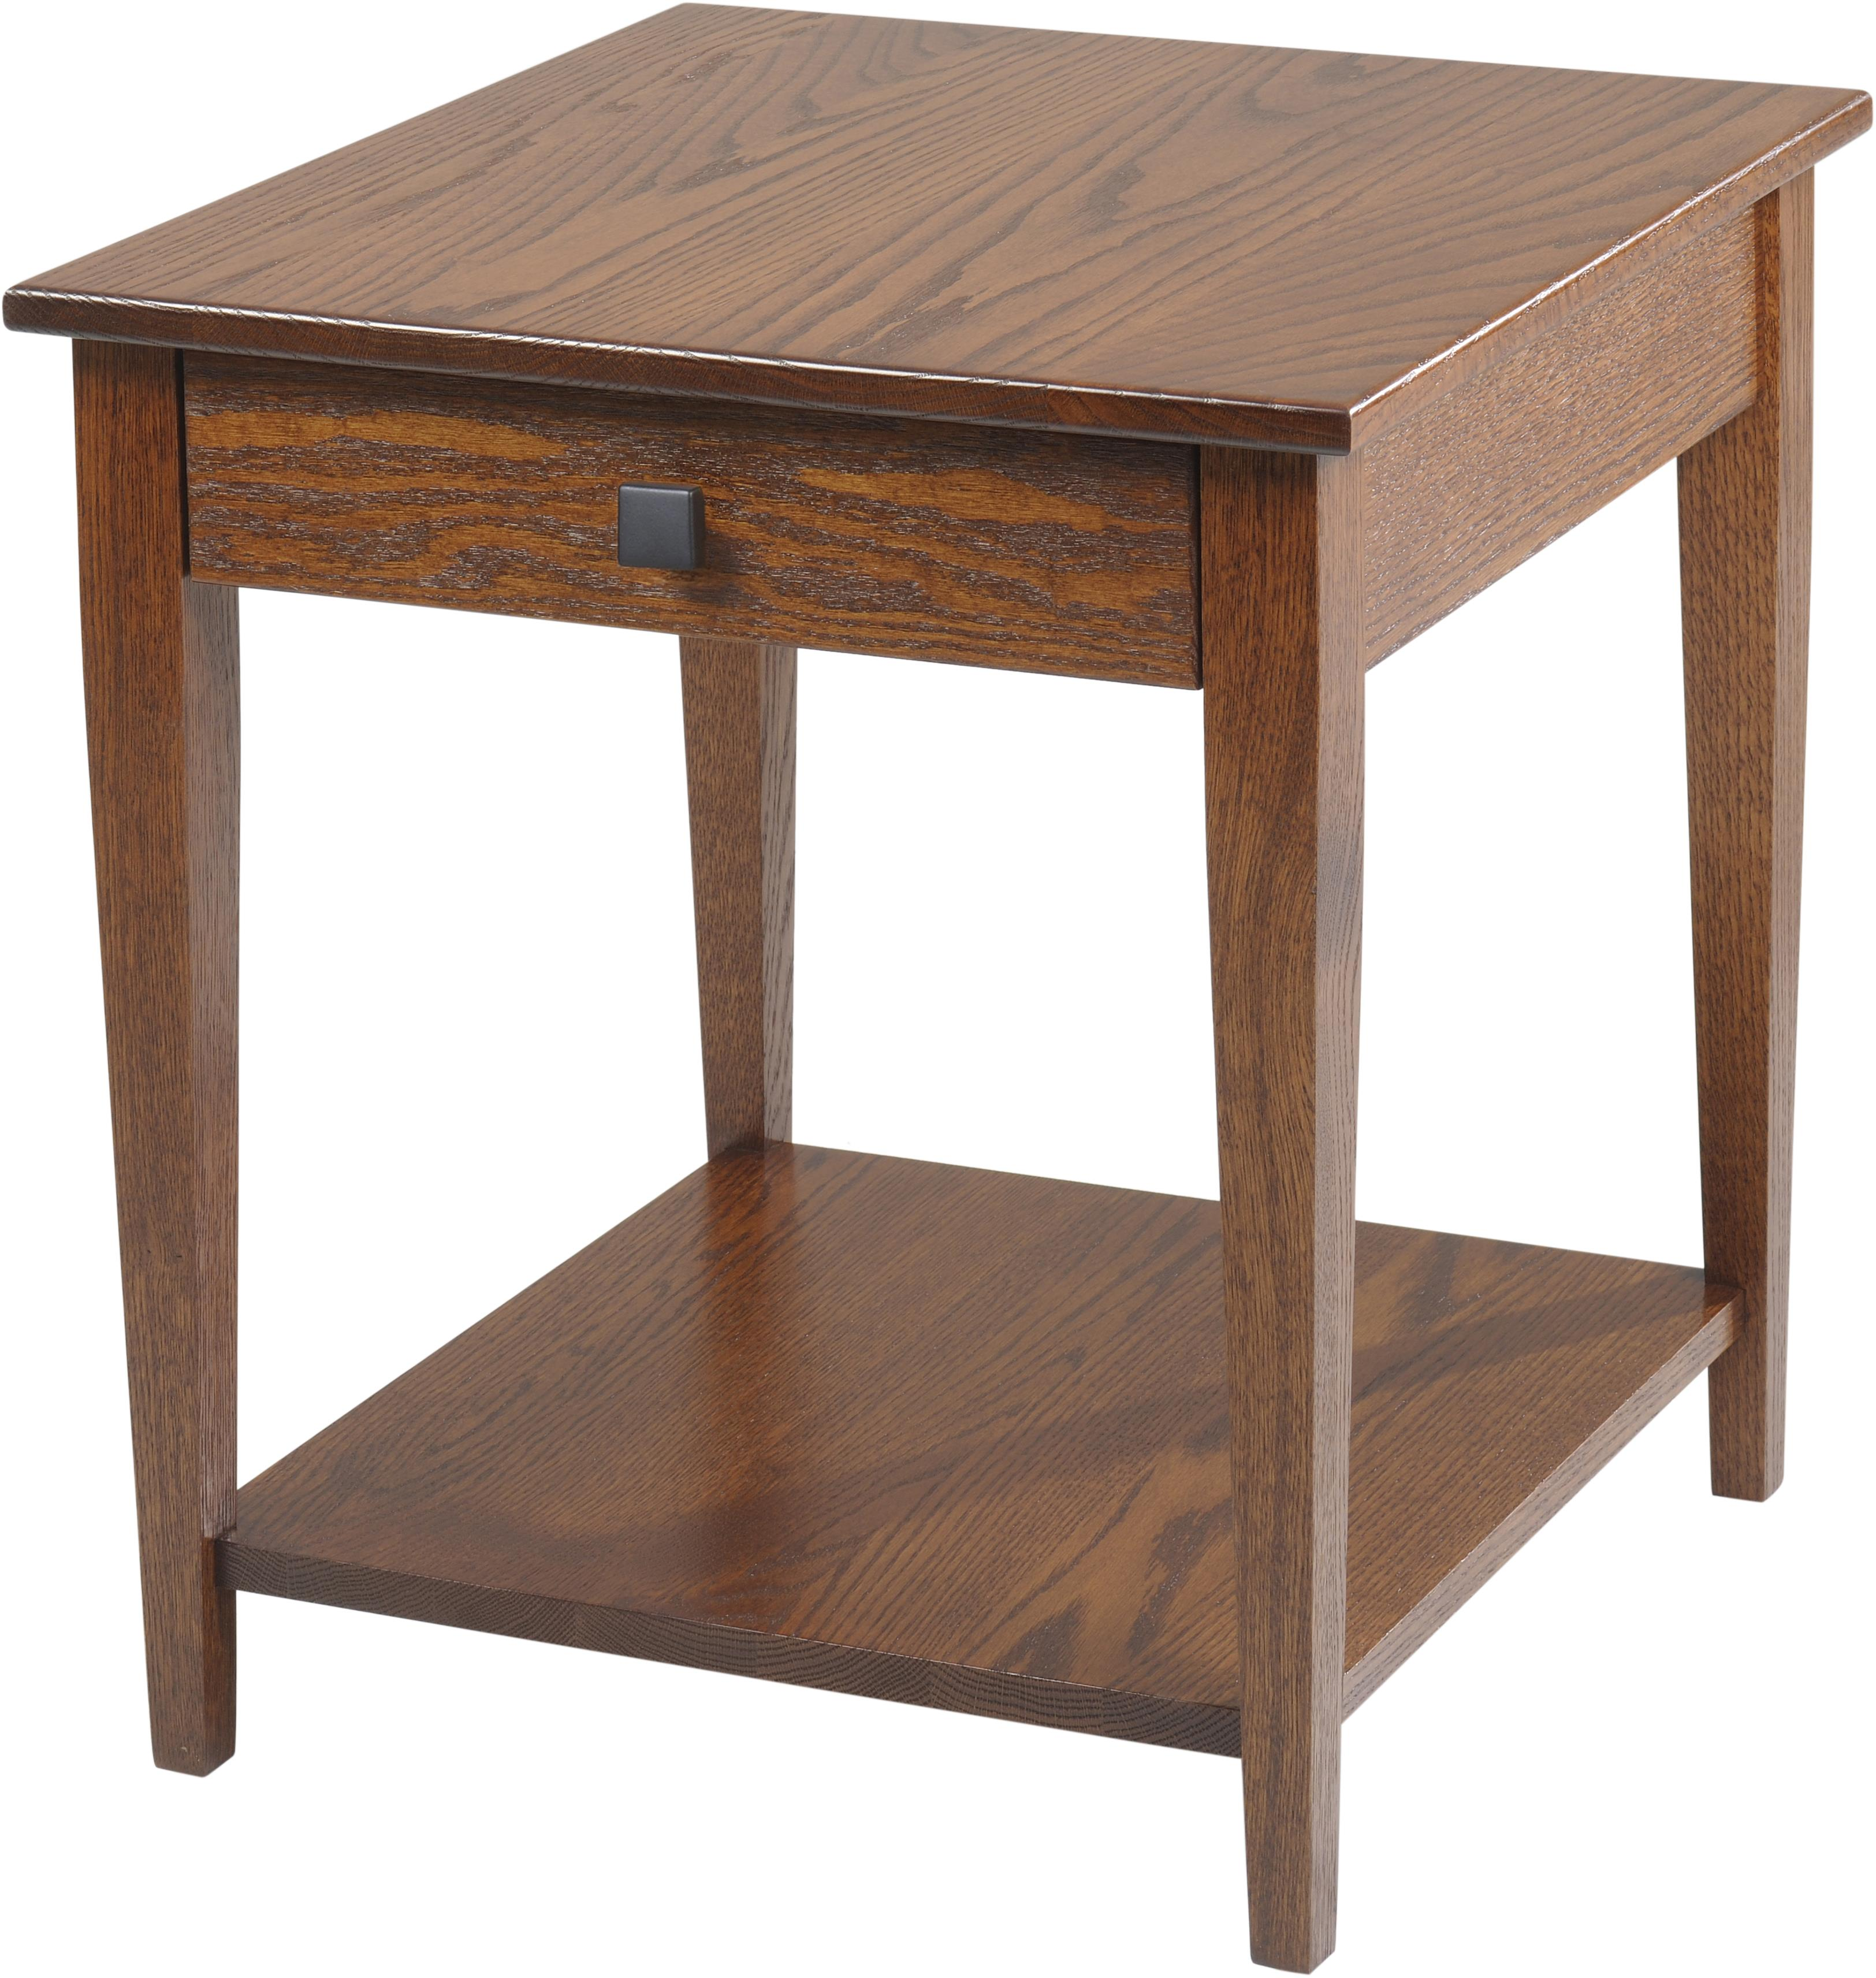 Woodland Shaker End Table with Shelf by Y & T Woodcraft at Saugerties Furniture Mart